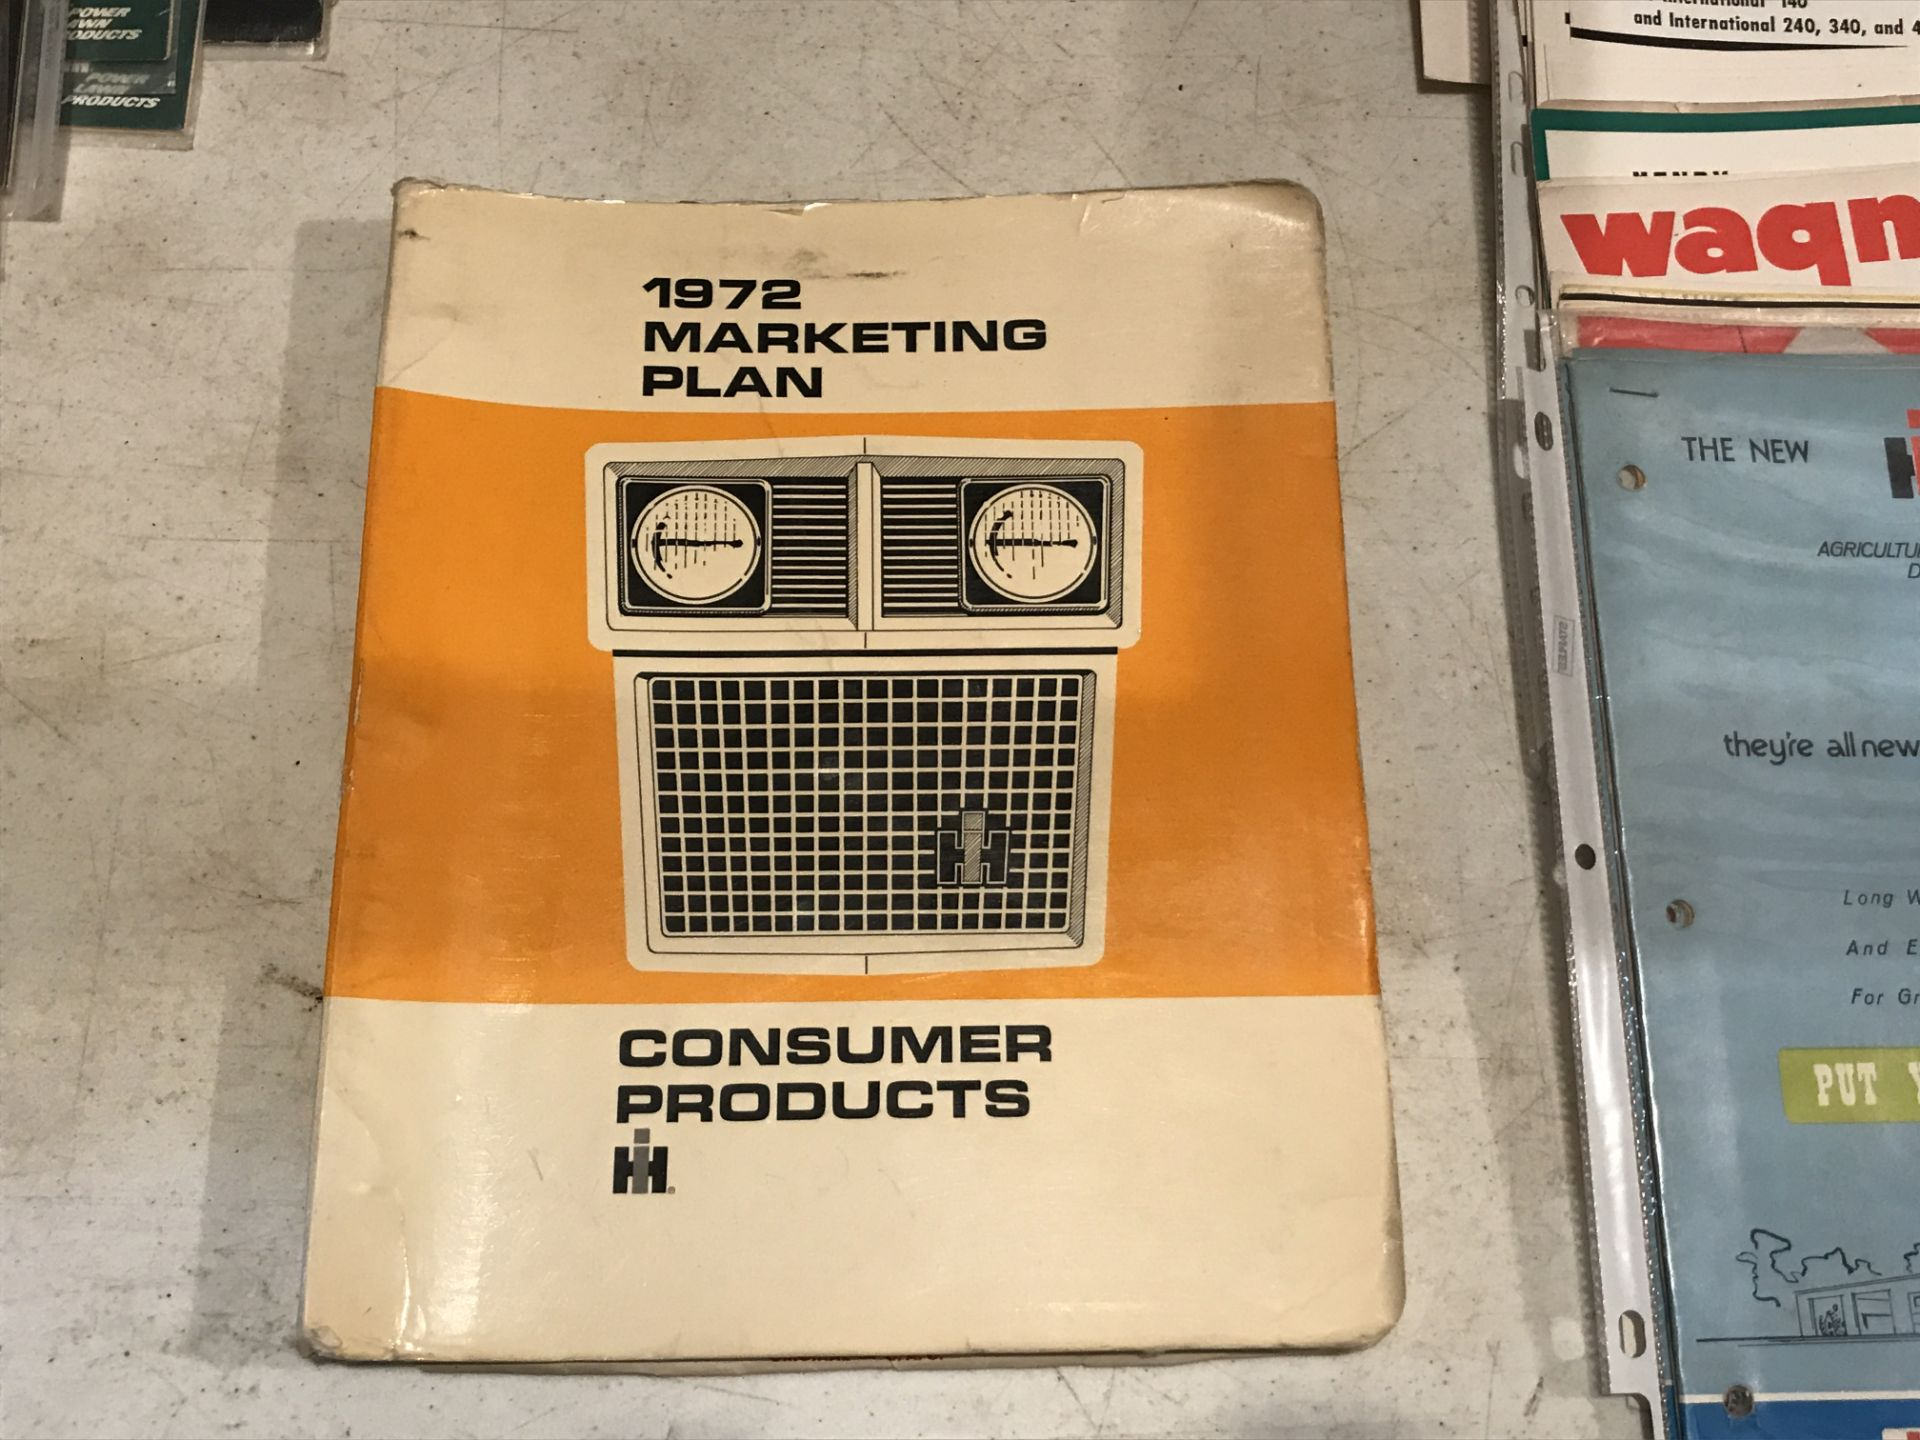 Lot 22 - 1972 Marketing Plan Consumer Products Book